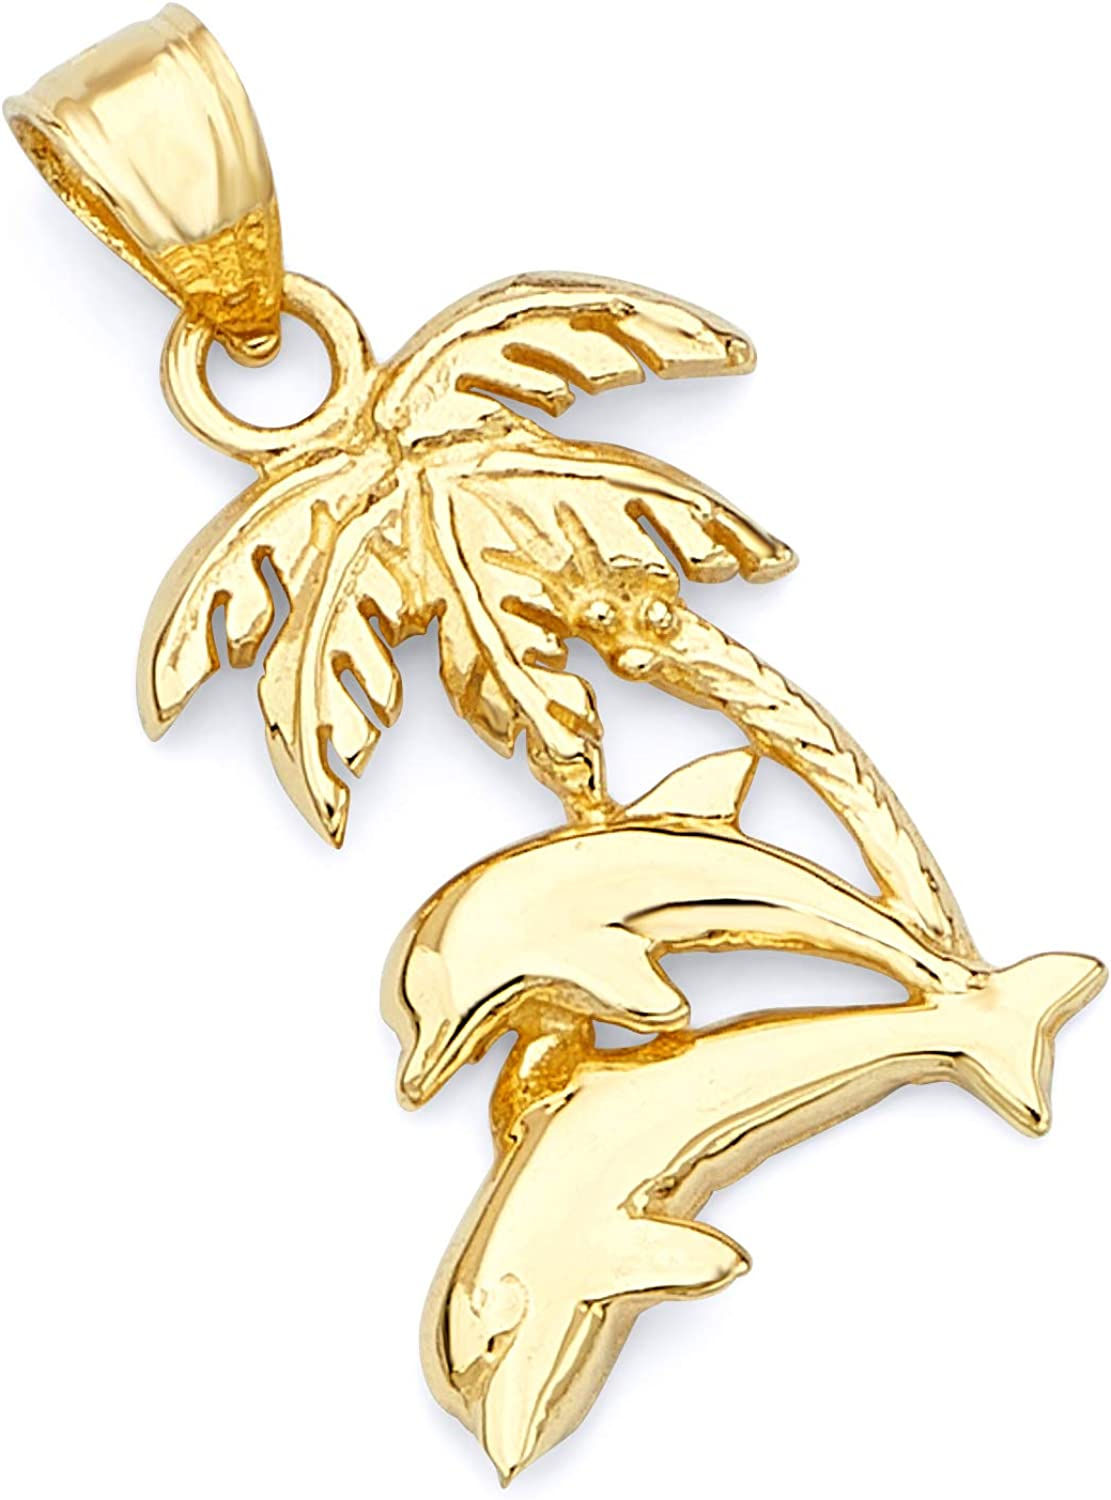 14k Yellow Gold Max 59% OFF Dolphin Max 73% OFF Tree Palm with Pendant